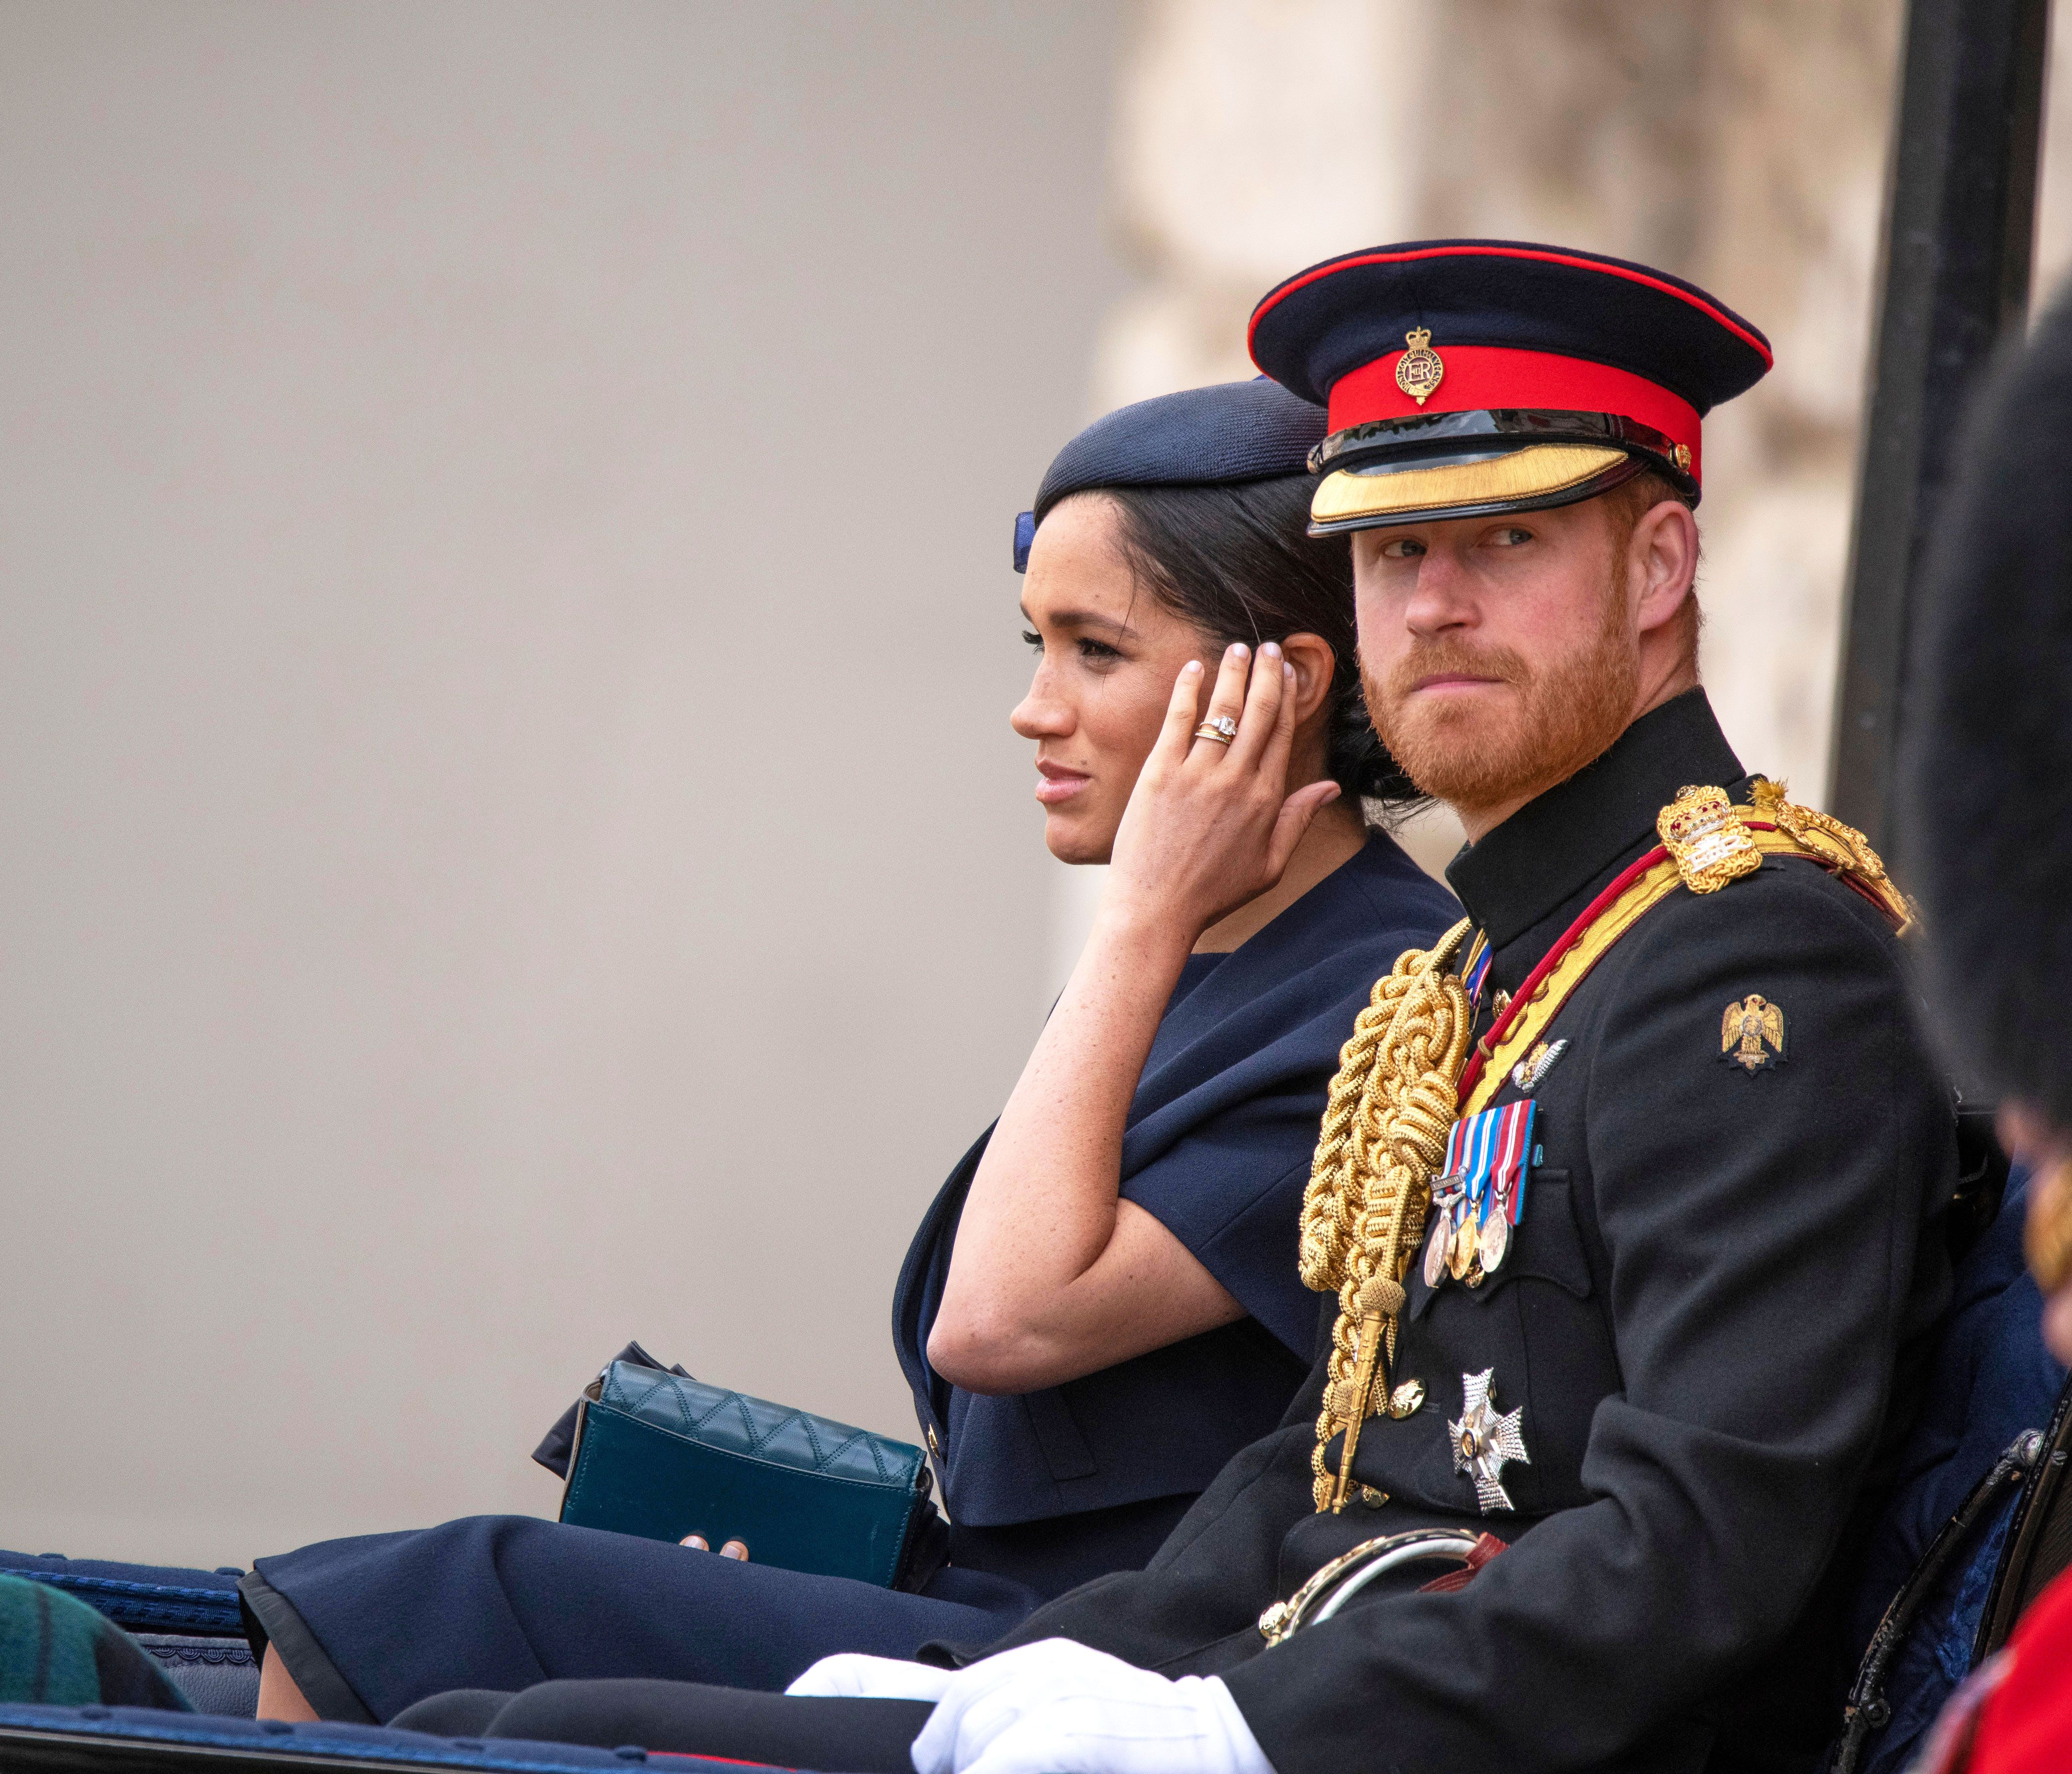 Meghan Markle Apparently Updated Her Engagement Ring to Include More Stones